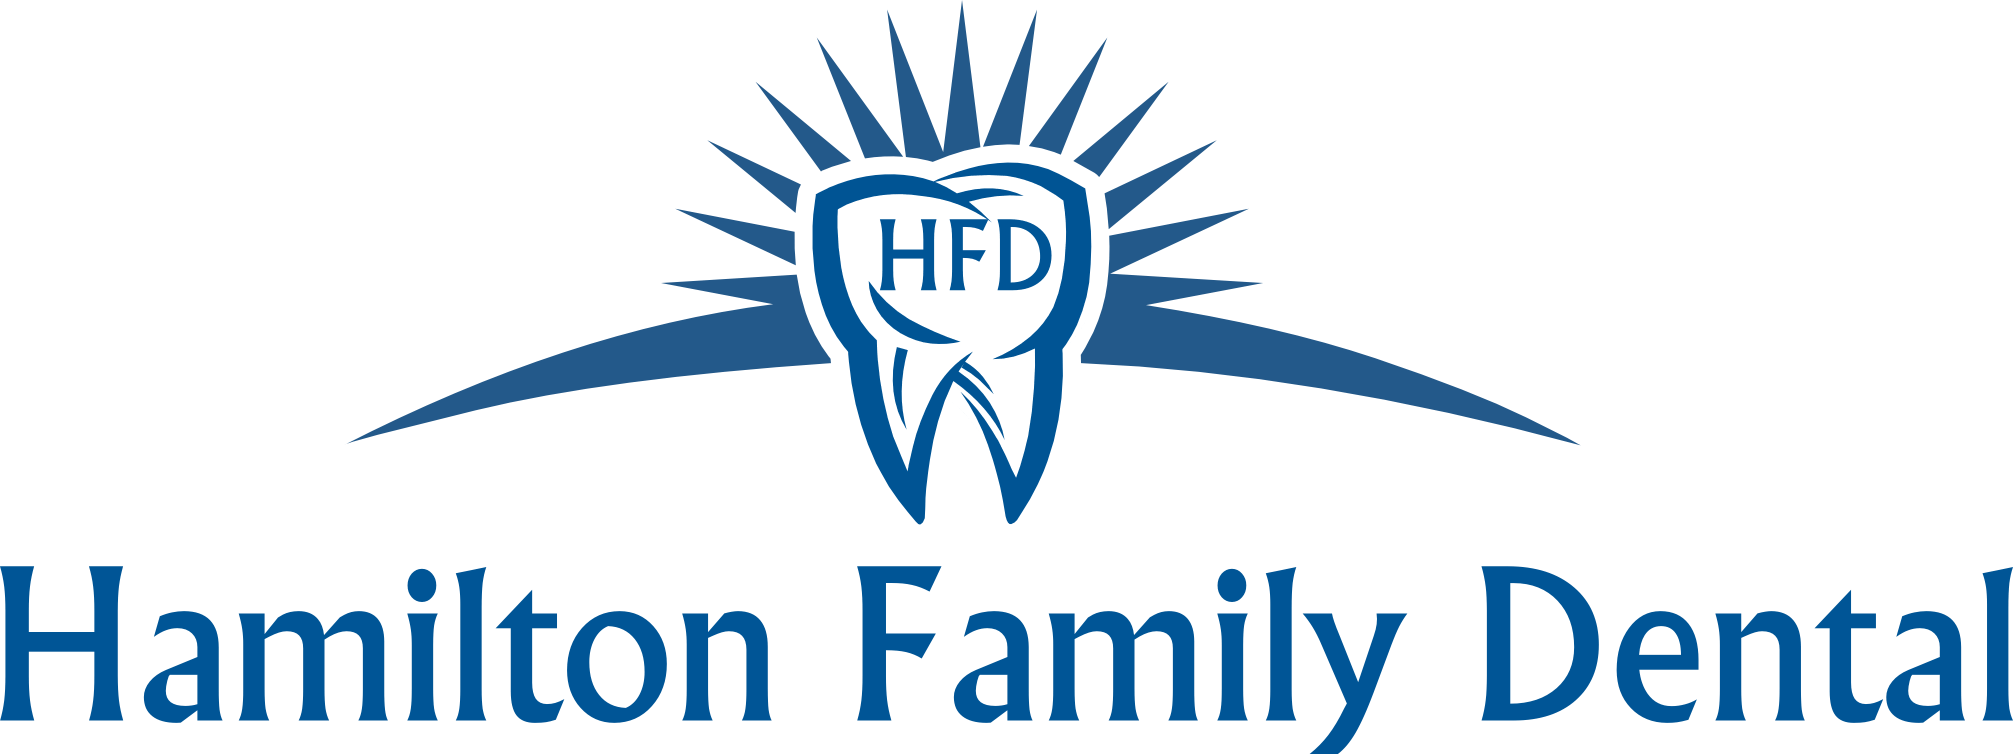 Hamilton Family Dental